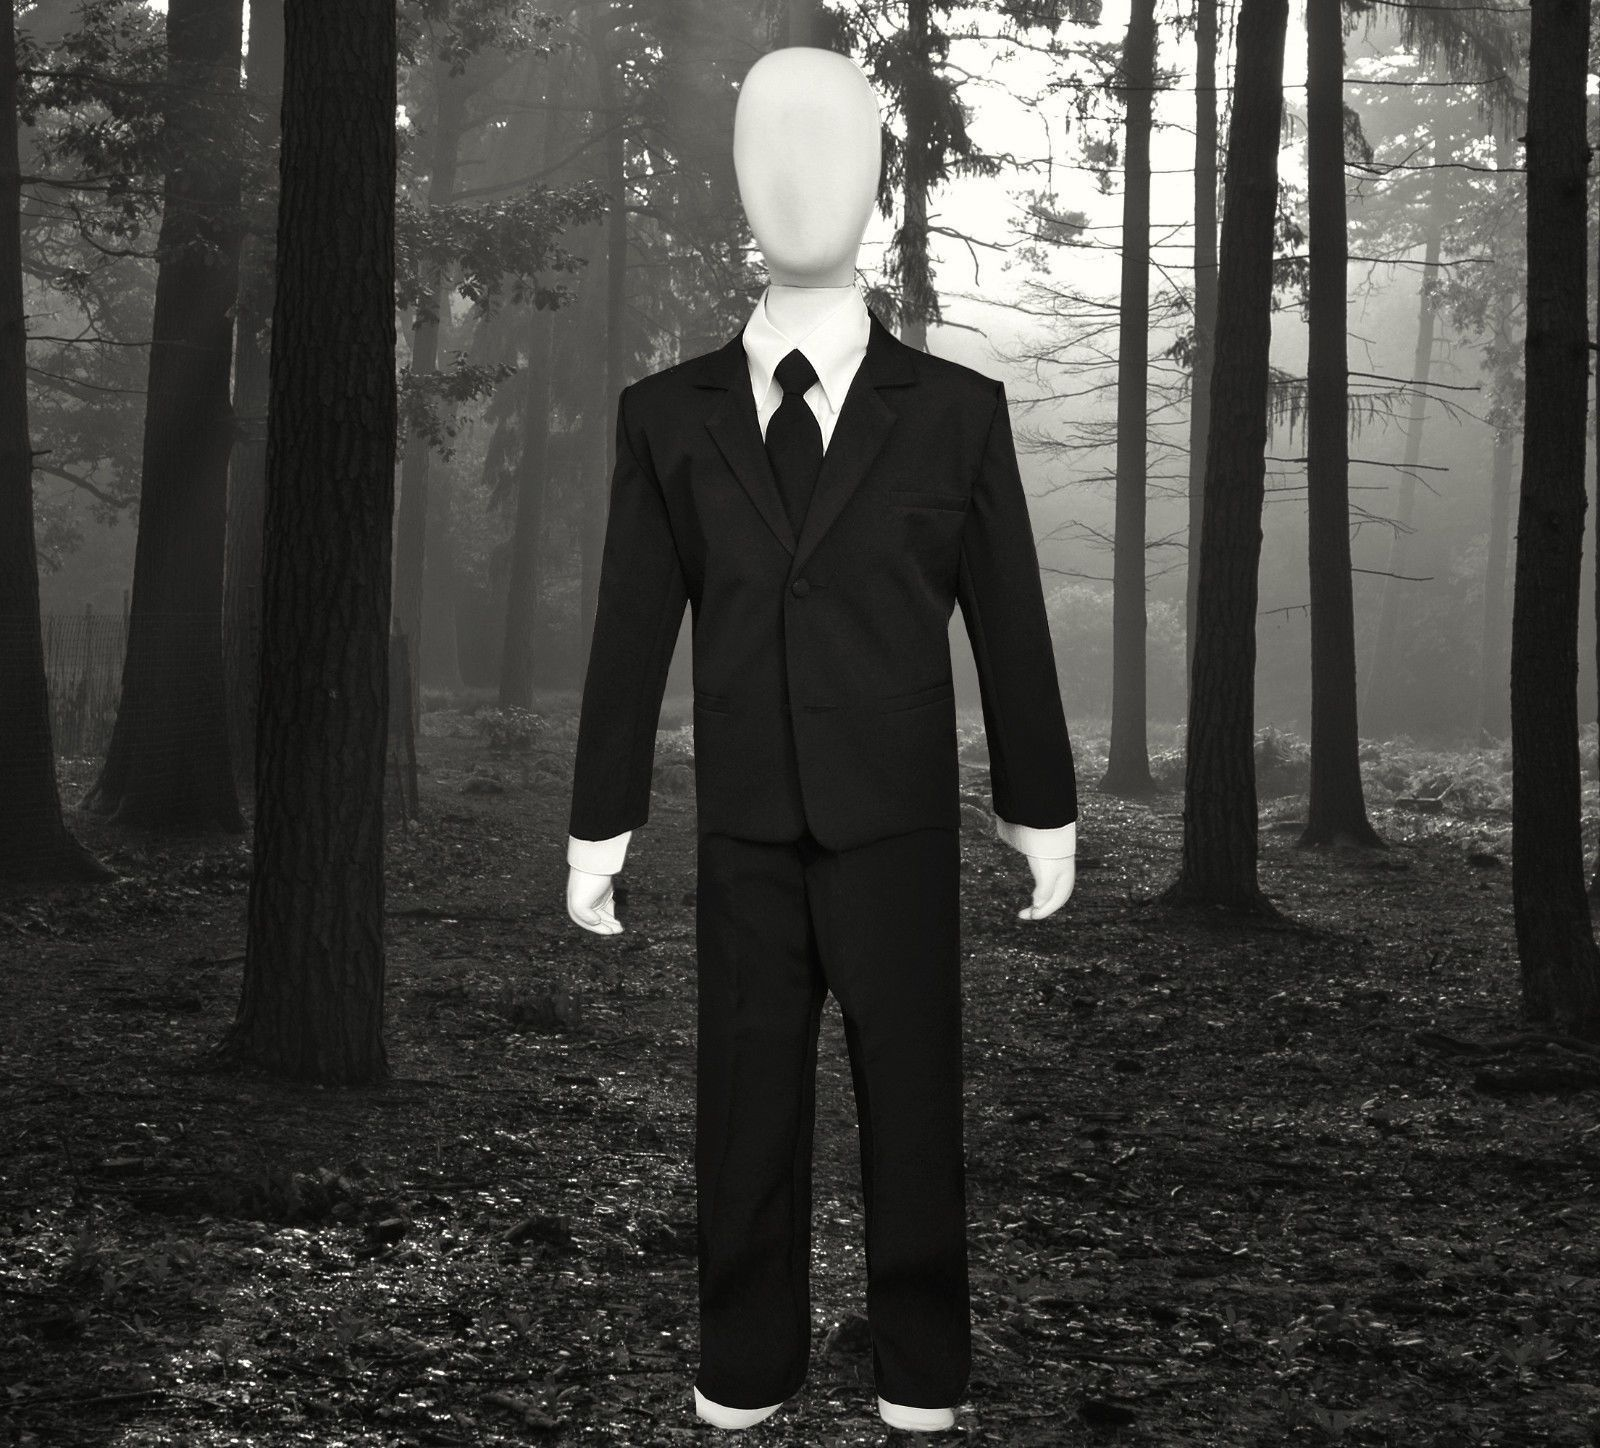 Boys Slenderman Costume Suit. For Halloween Kids of All ages. Suit Only No Mask & Boys Slenderman Costume Suit. For Halloween Kids of All ages. Suit ...